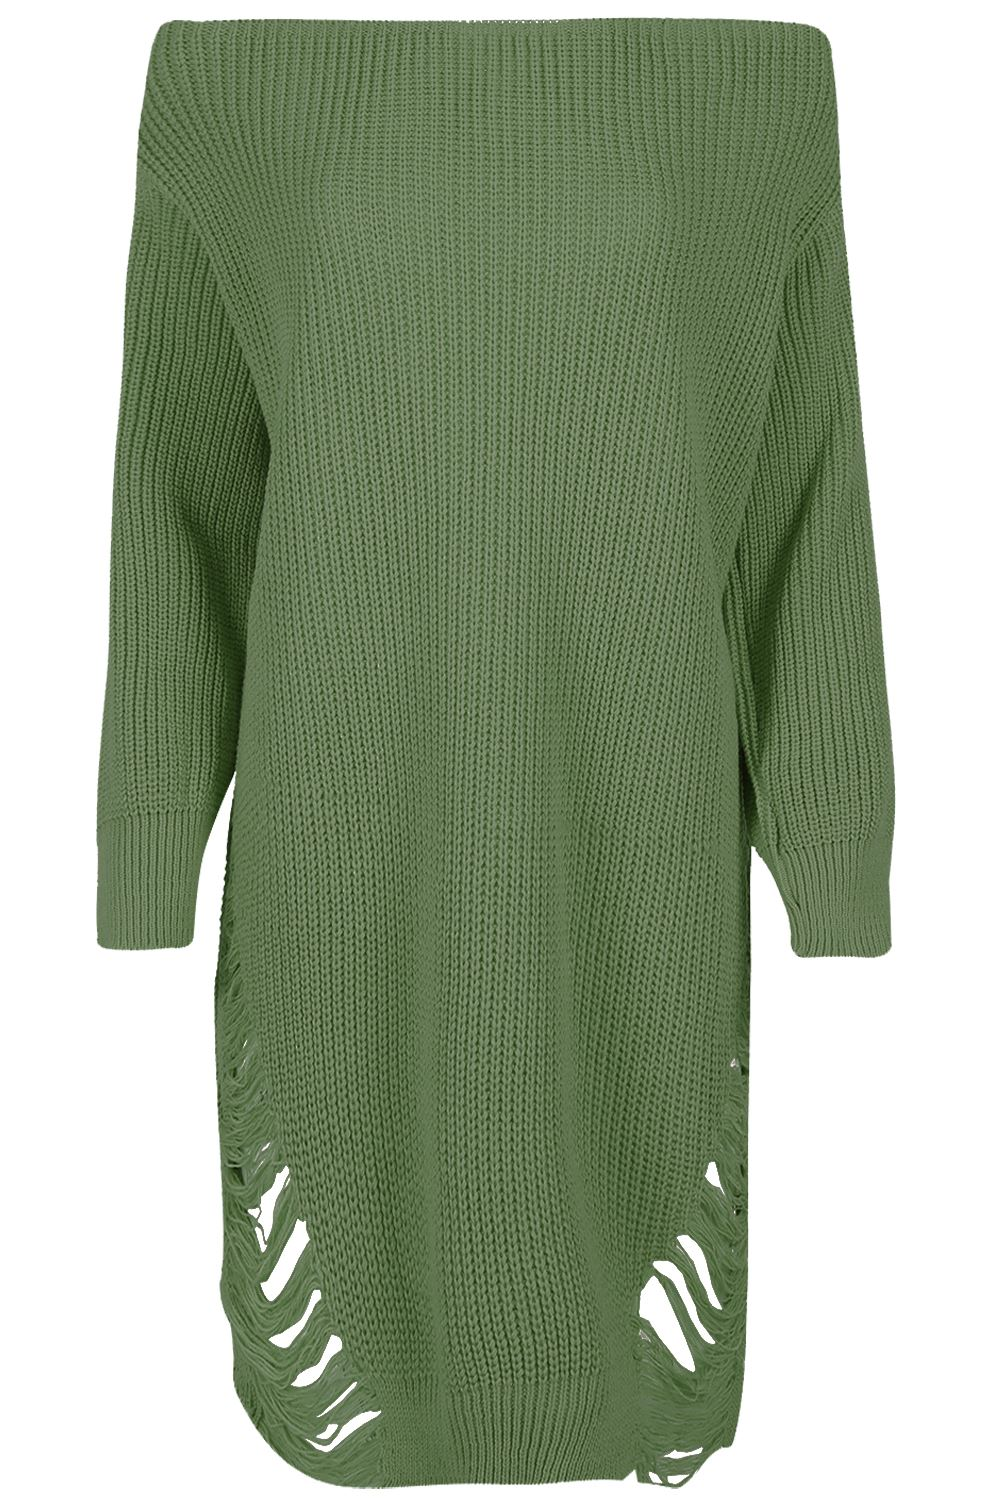 Womens-Oversized-Jumper-Ladies-Dress-Long-Sleeve-Chunky-Knitted-Long-Sweater-Top thumbnail 29